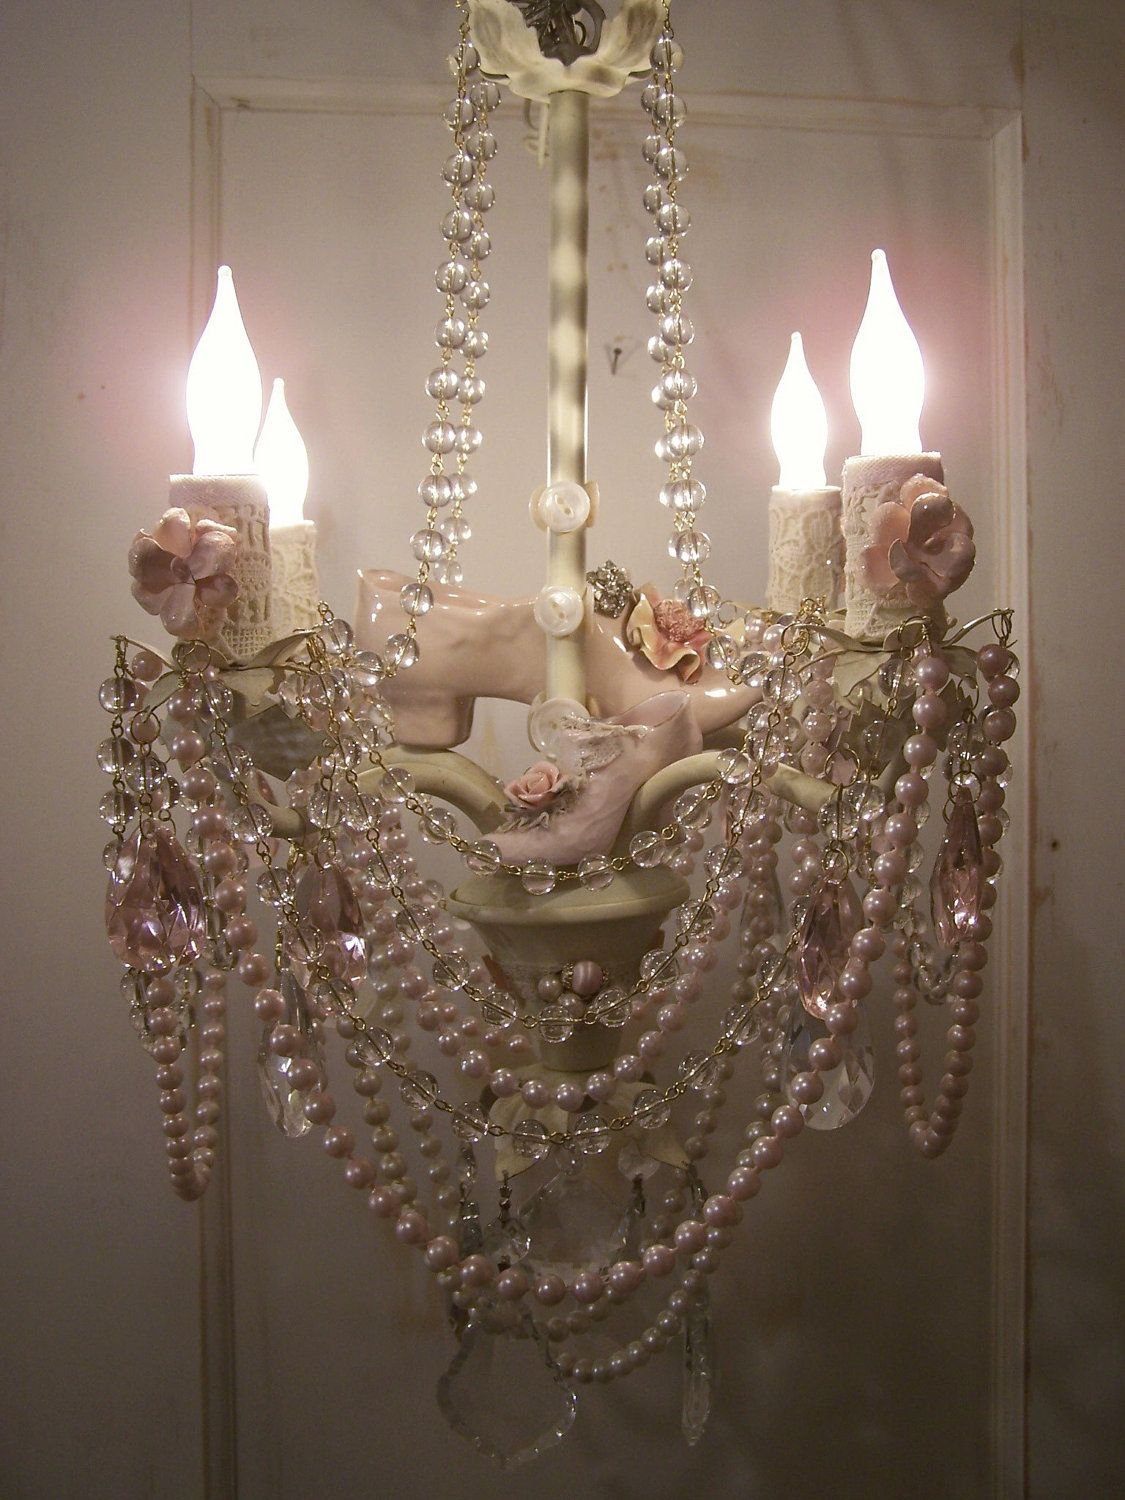 Pink posh shabby chic crystal chandelier embellished to perfection pink posh shabby chic crystal chandelier embellished to perfection 26900 via etsy arubaitofo Images